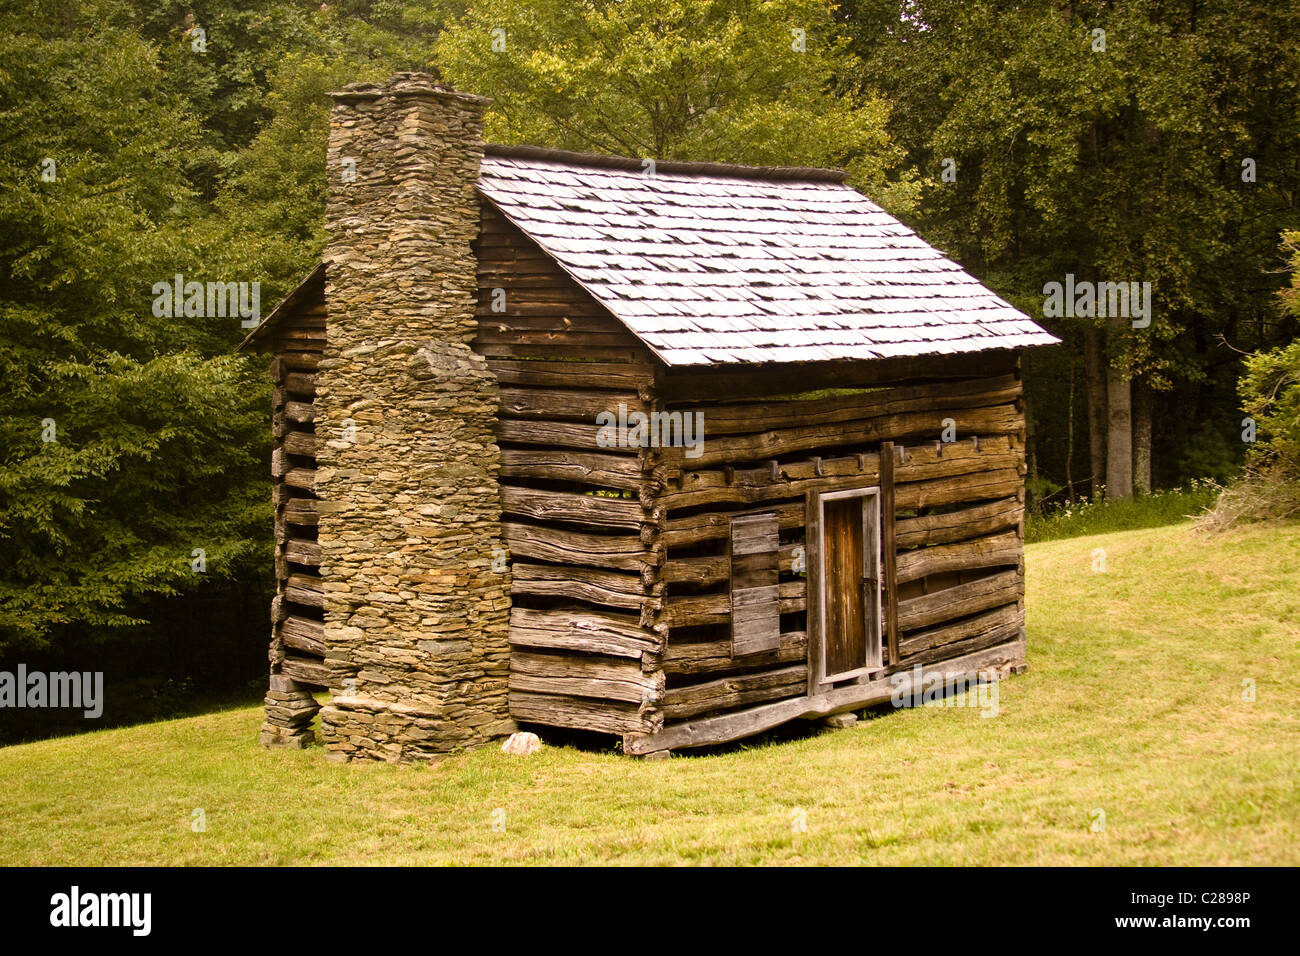 A log cabin with stone chimney in a grassy field for Stone chimneys